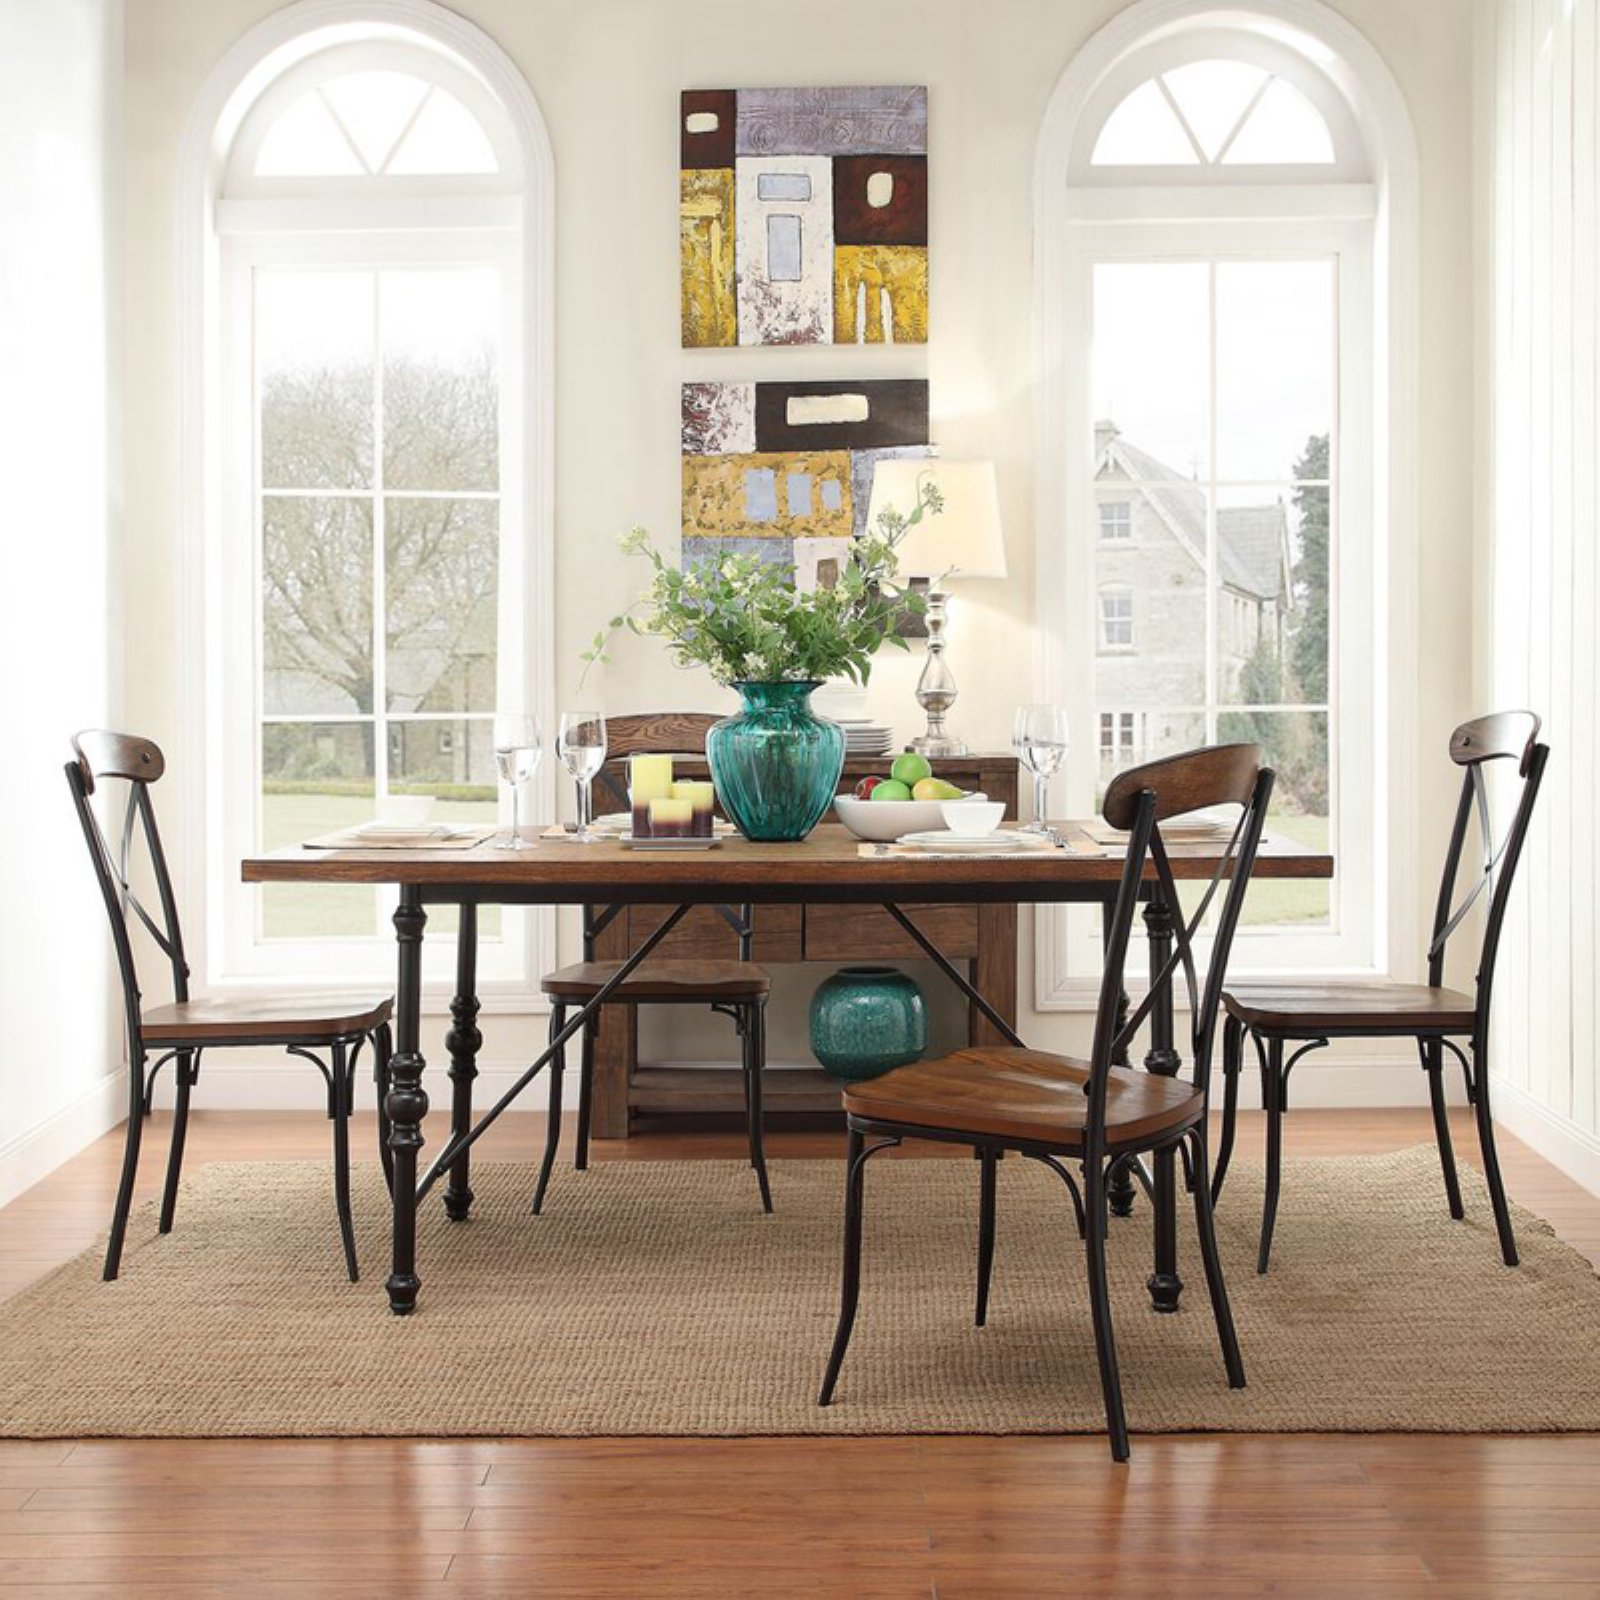 Weston Home 5 Piece Industrial Dining Set with X-Back Chairs